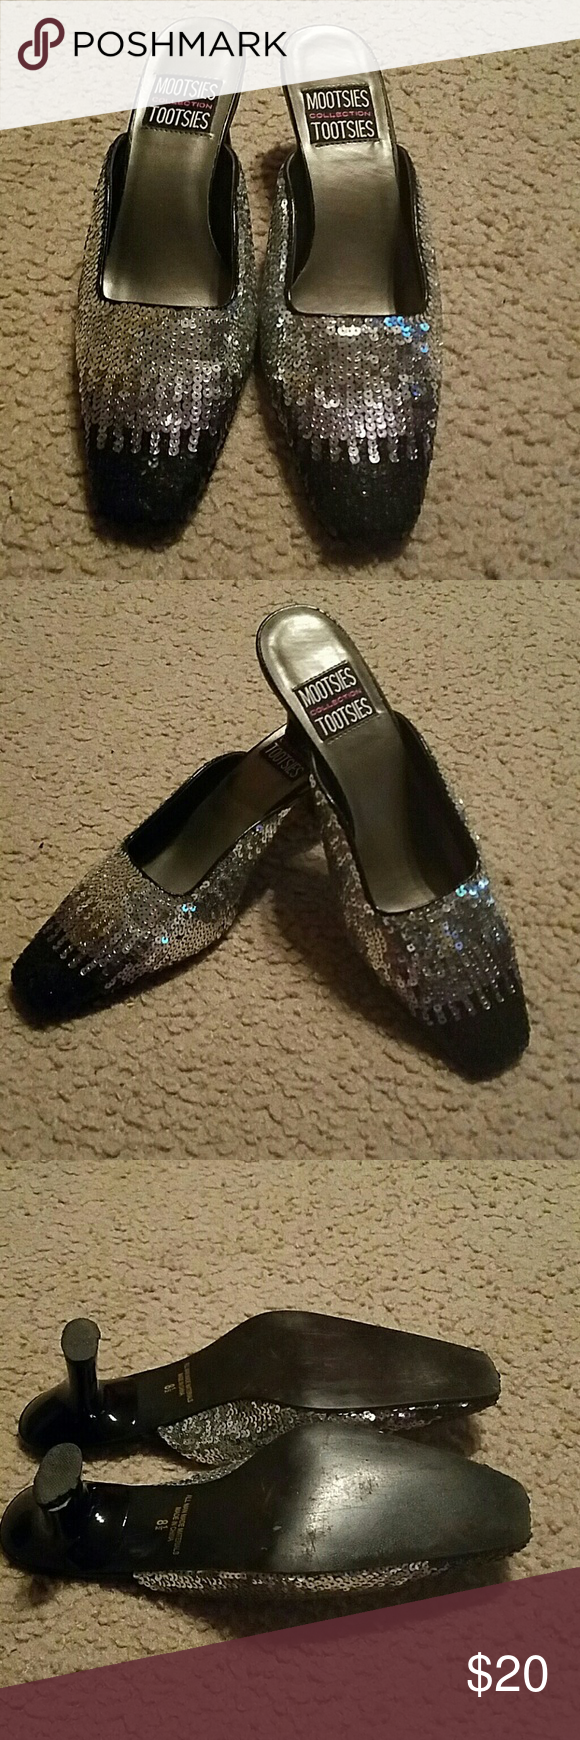 Black and Silver Sequin Mules Black and Silver Sequin Mules. Size 8 1/2 Mootssies Tootsies Collection  Shoes Mules & Clogs